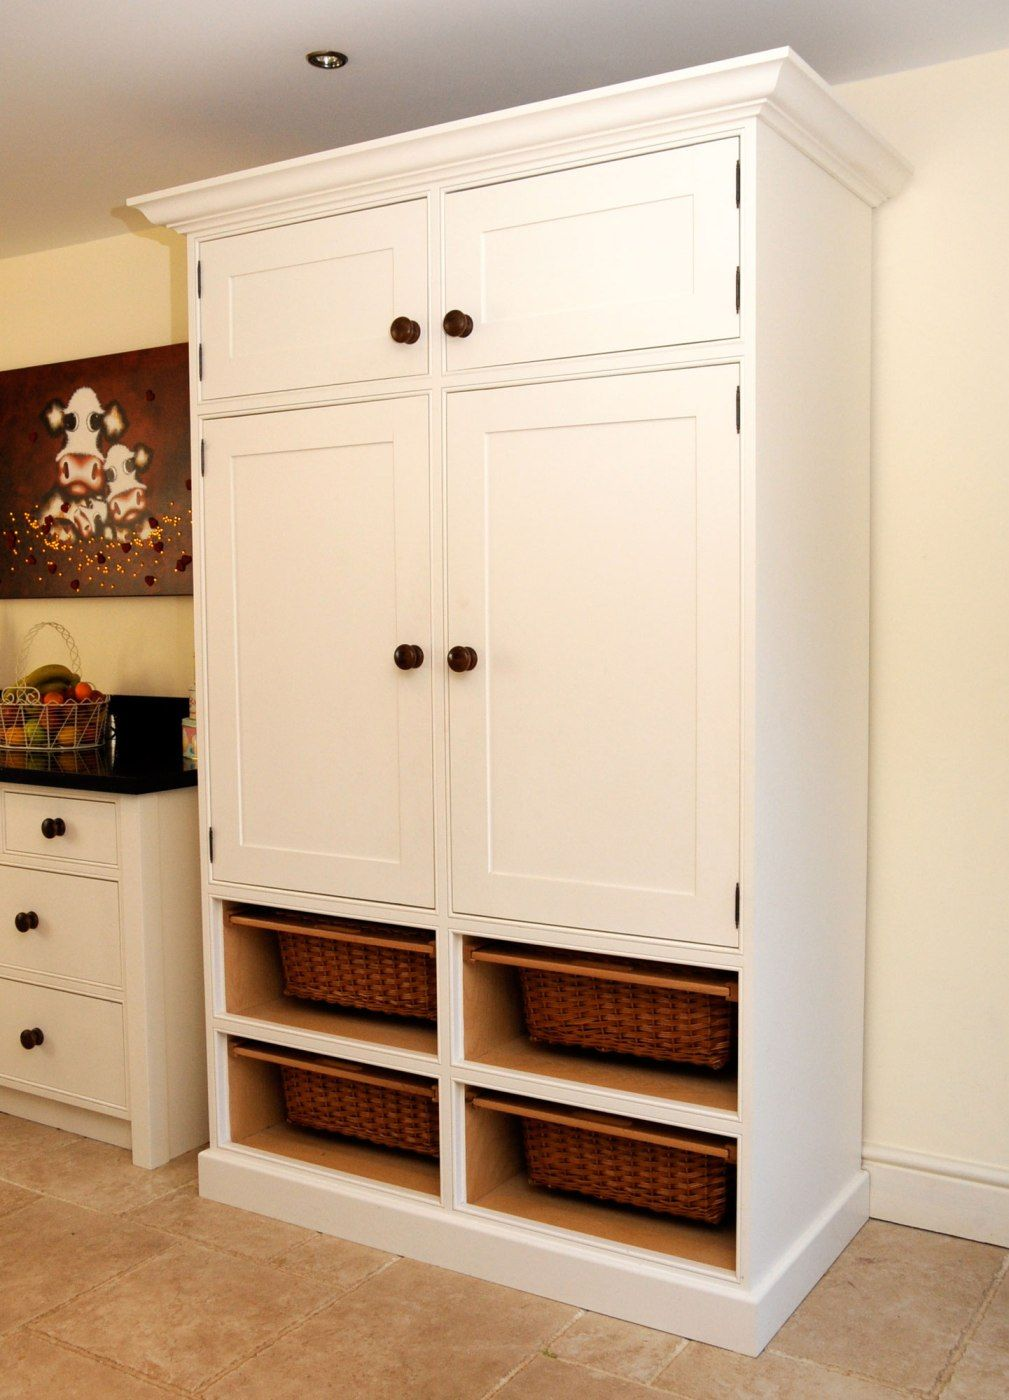 Lowes Kitchen Pantry Concrete Sink Free Standing Cabinets Kitchens Armarios Cocina Cupboard Cabinet Freestanding